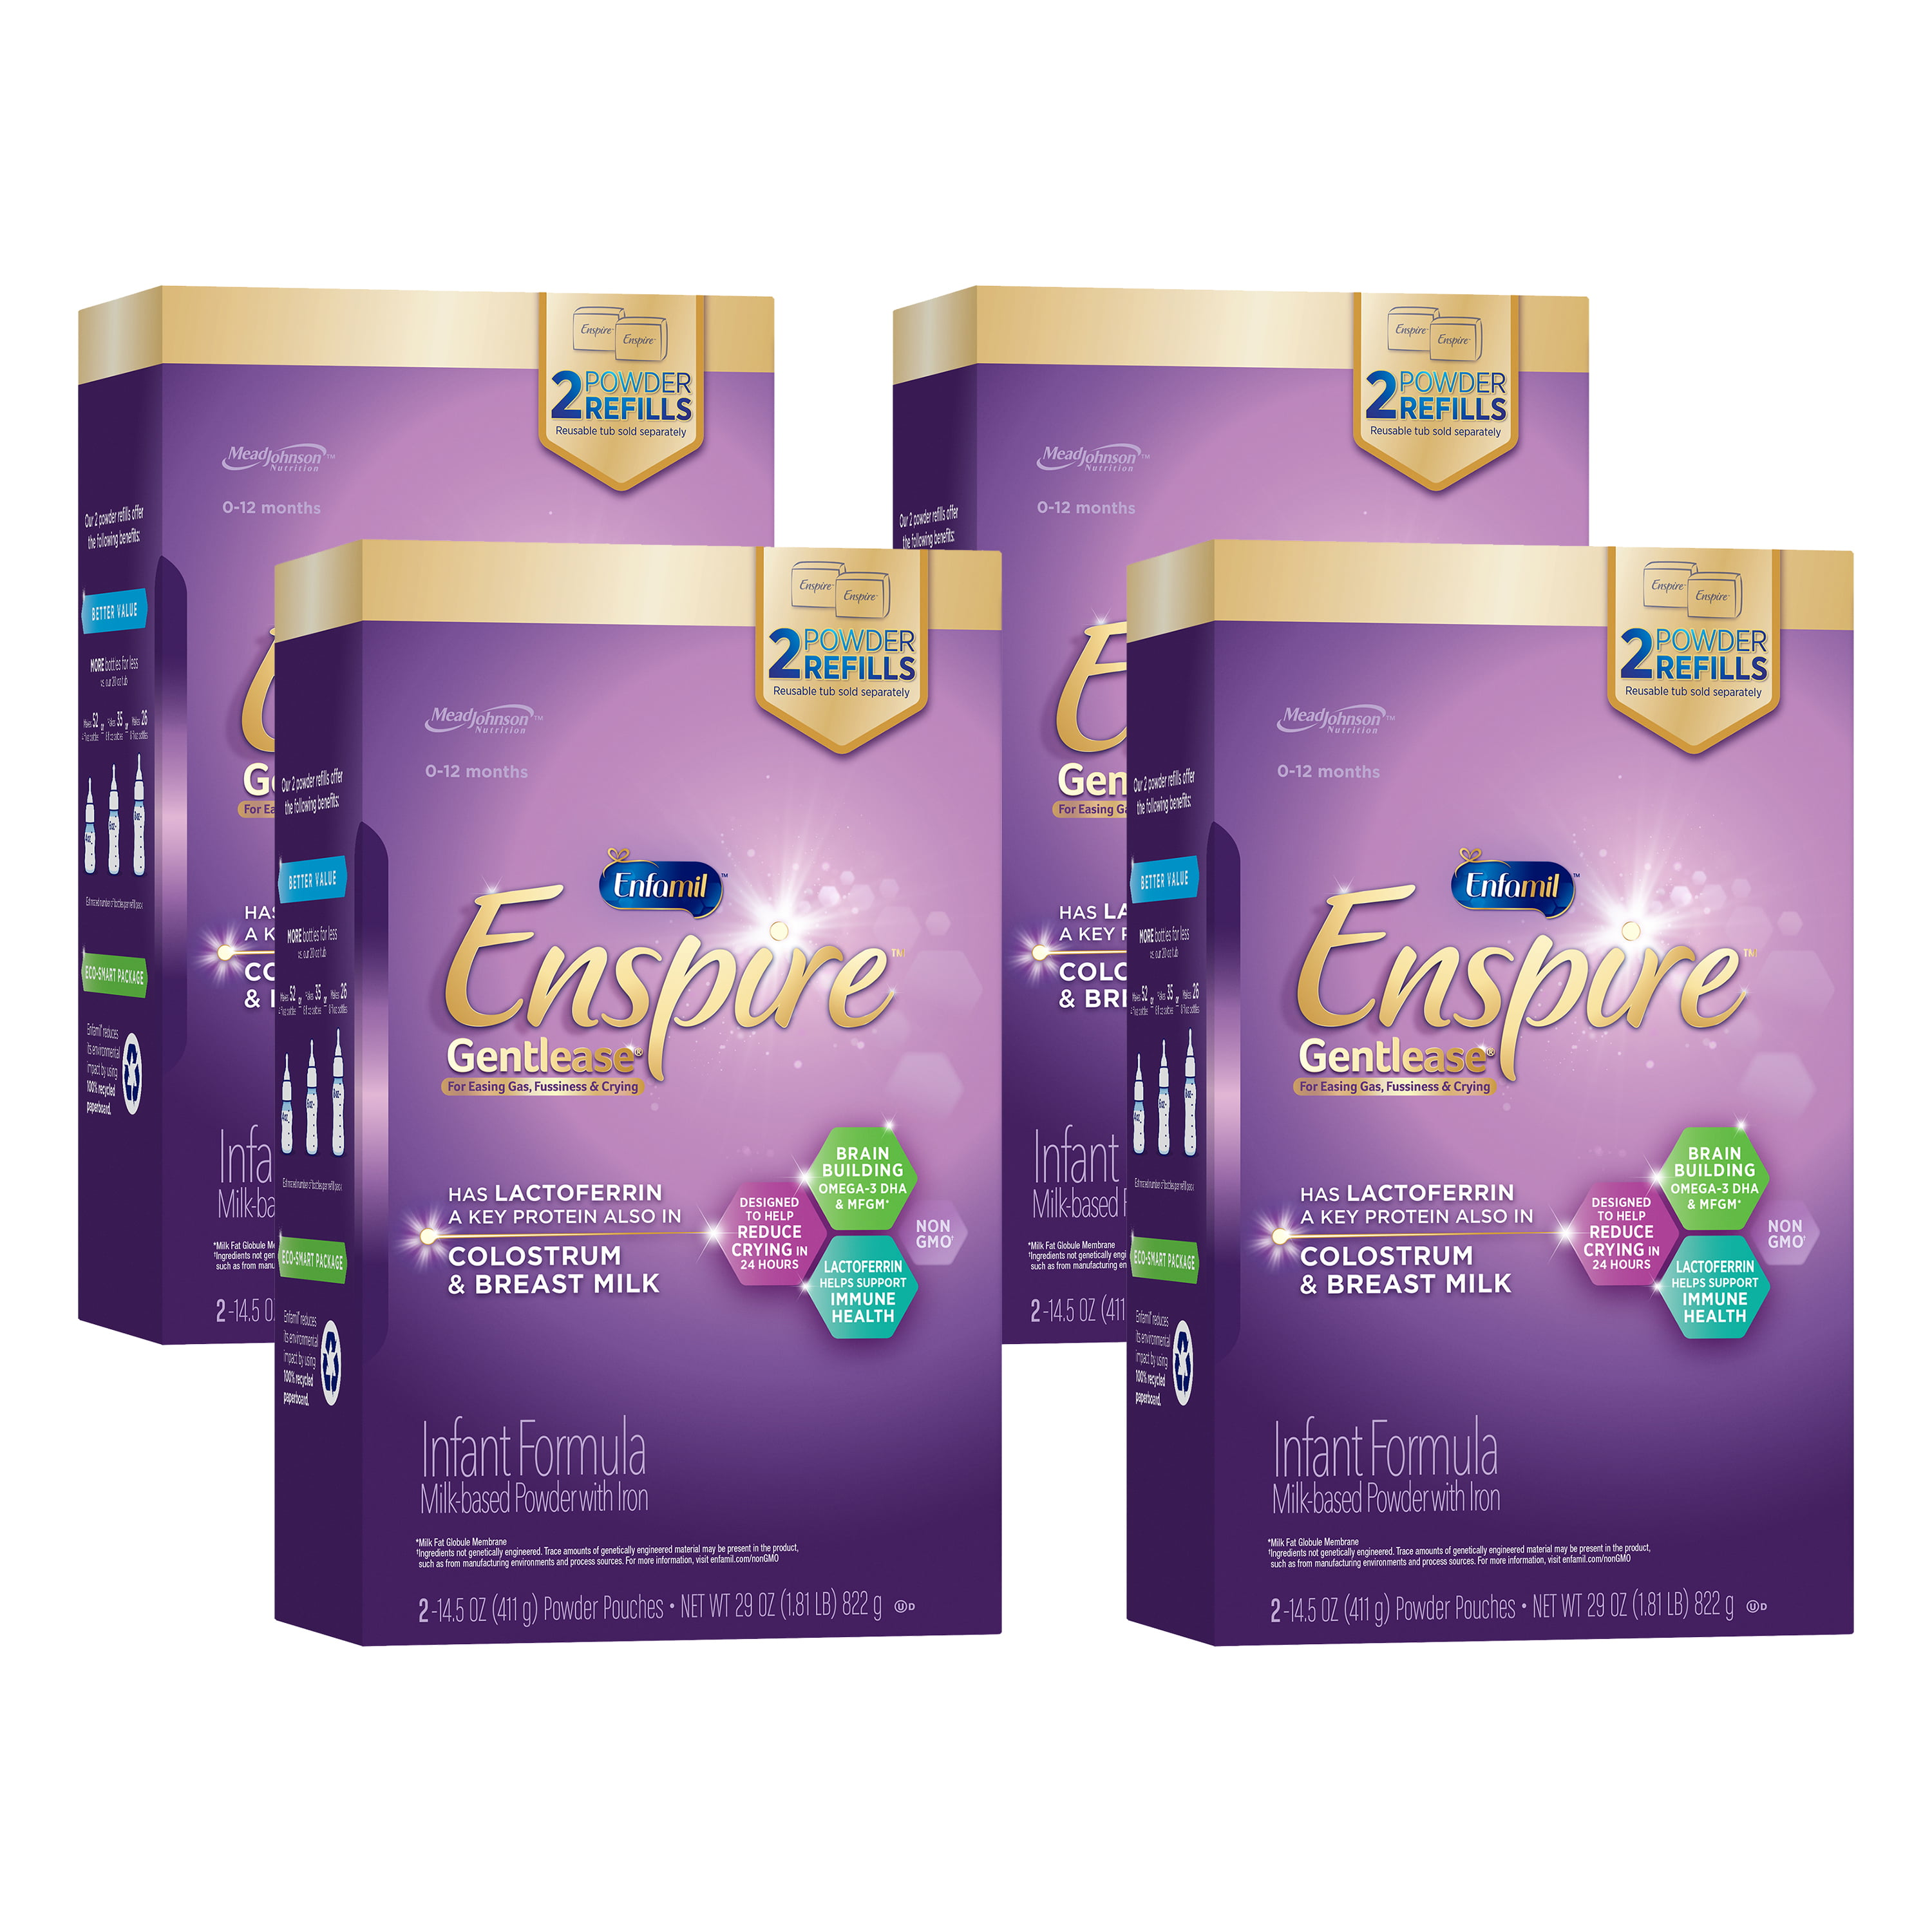 Enfamil Enspire Gentlease Infant Formula with MFGM and Lactoferrin - Powder, 29 oz Refill Box (4 Pack)